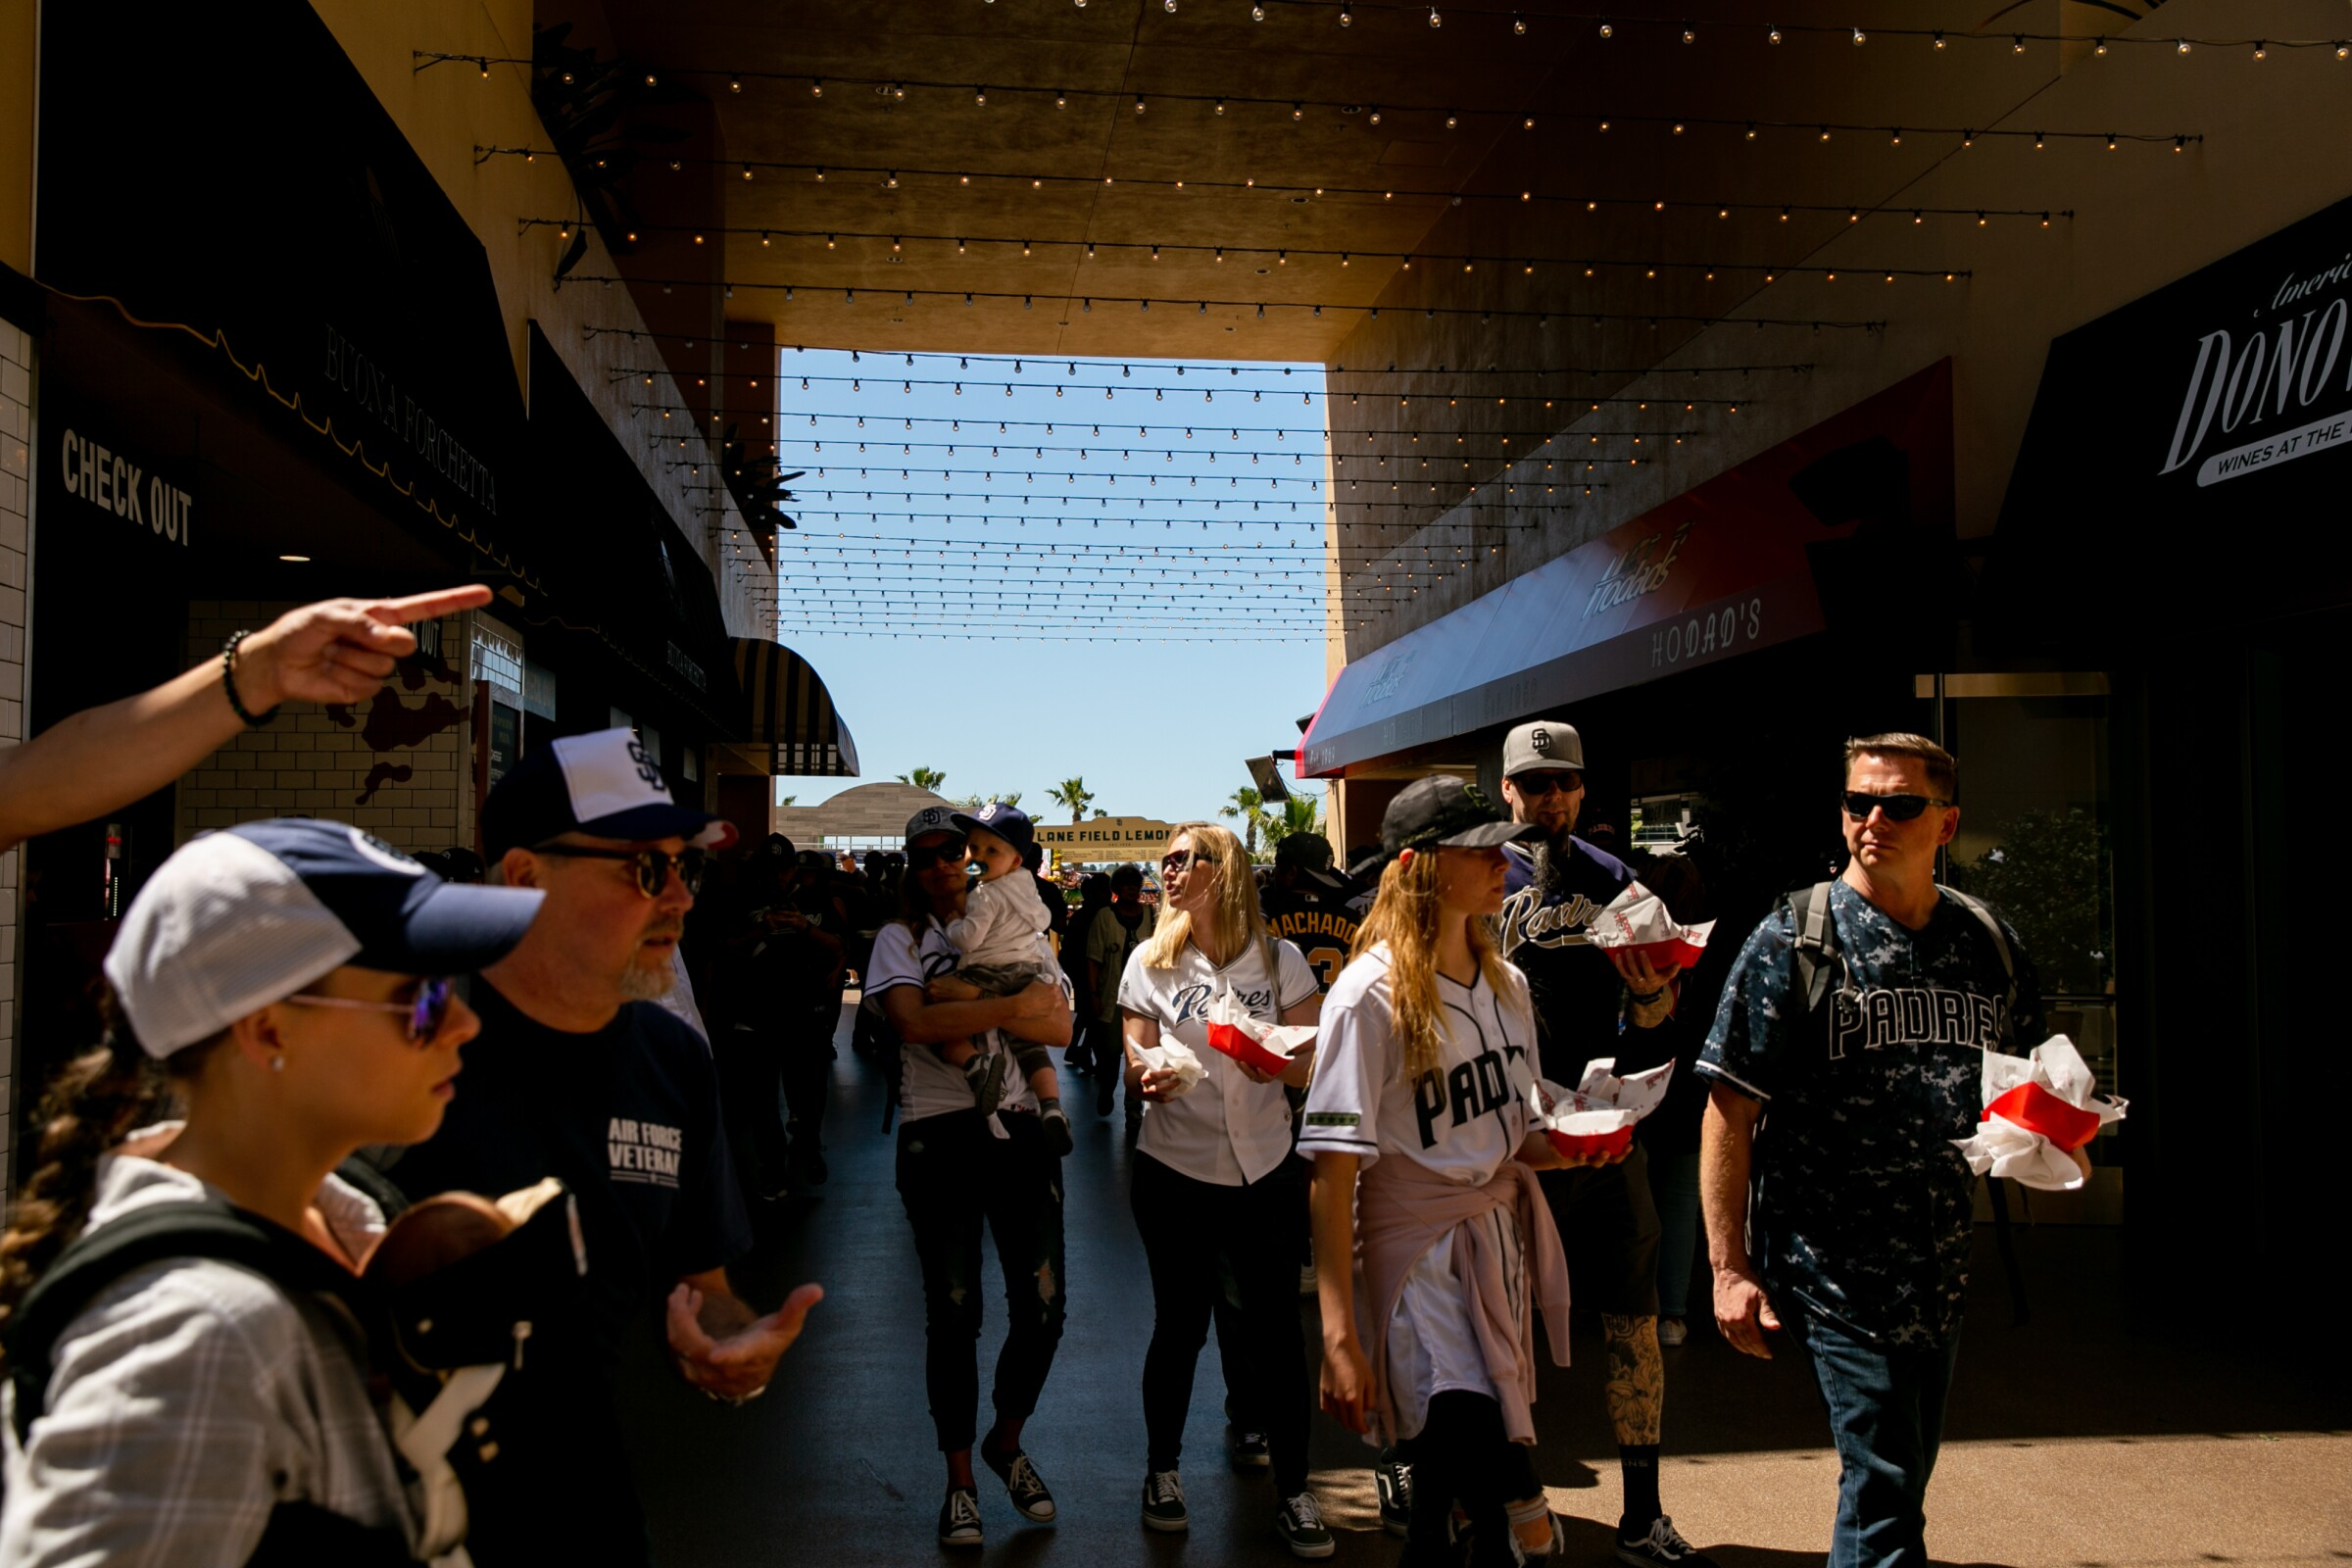 Fans grab concessions prior to the first pitch at Petco Park on Opening Day 2019 for the San Diego Padres.